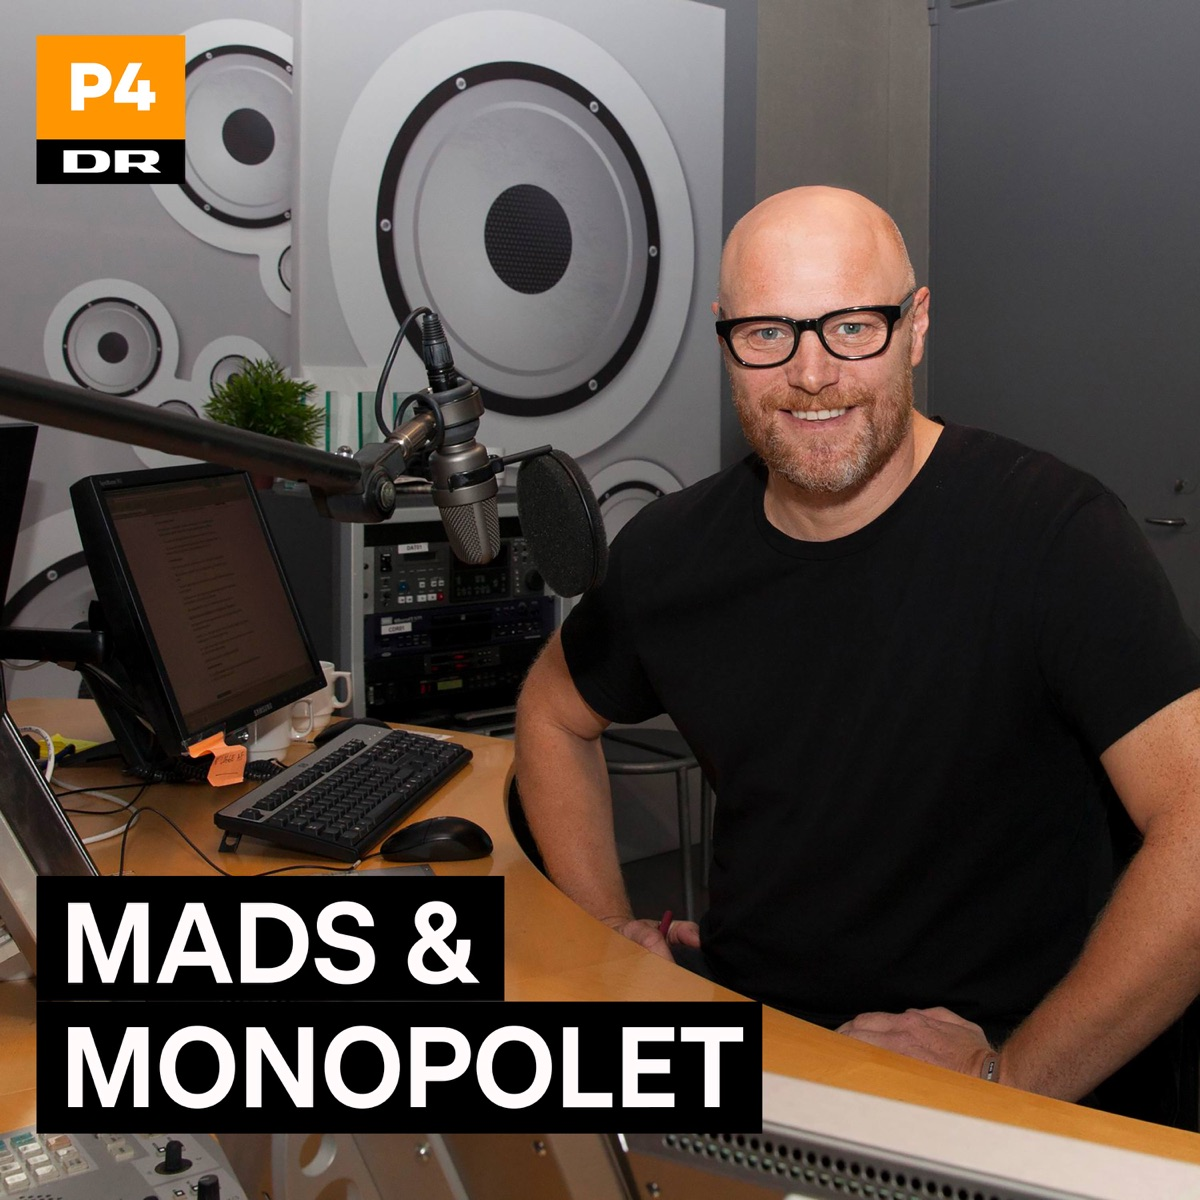 Mads & Monopolet - podcast - 21. nov 2020